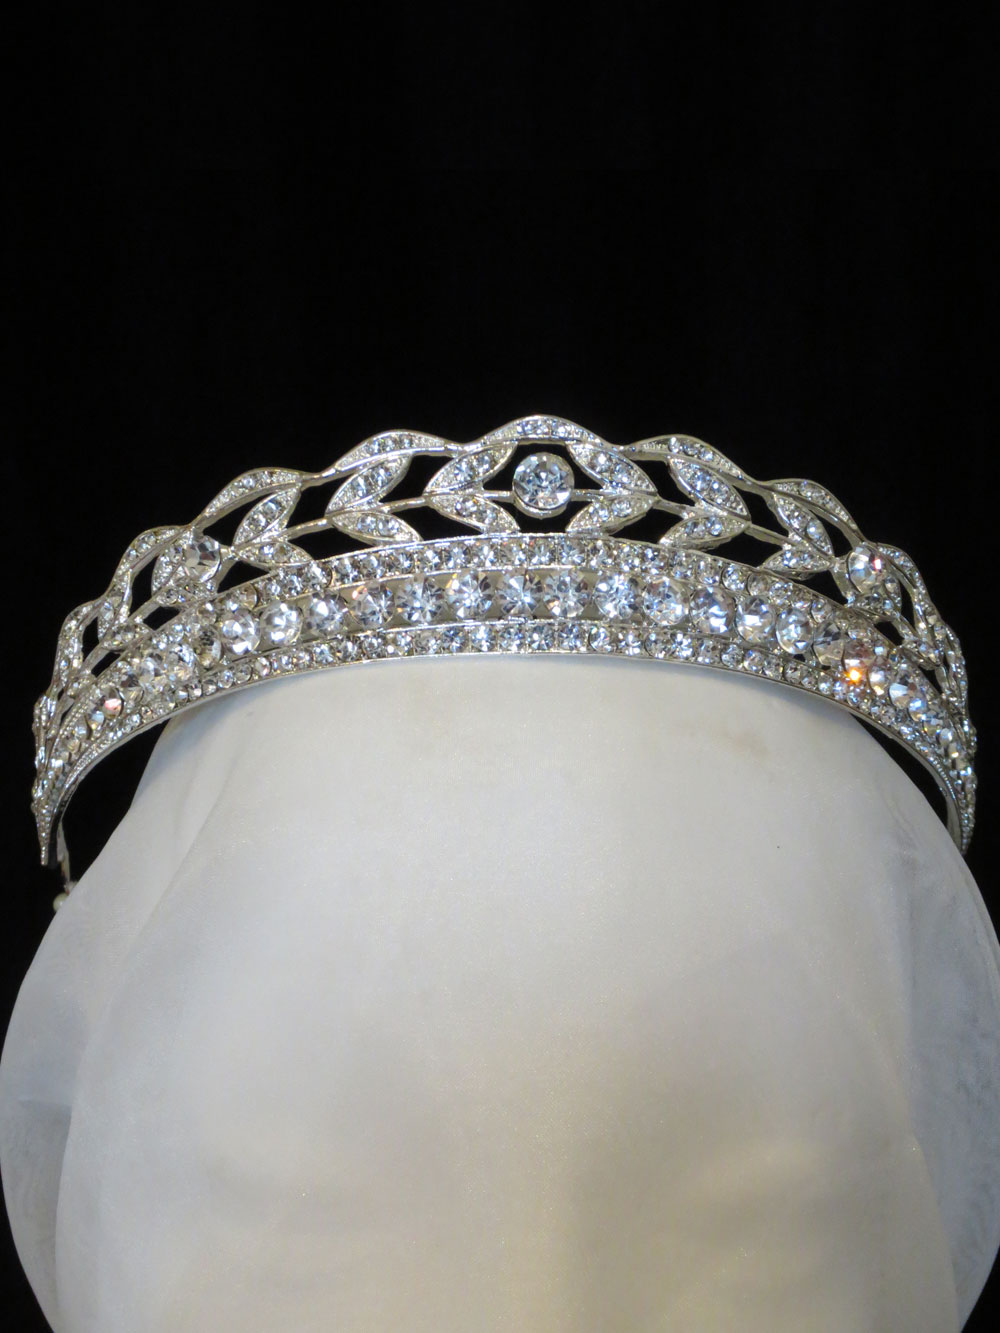 John-Zimmerman-Couture-Headpieces-and-Tiaras-Model-Chic-Gallery-Image-1